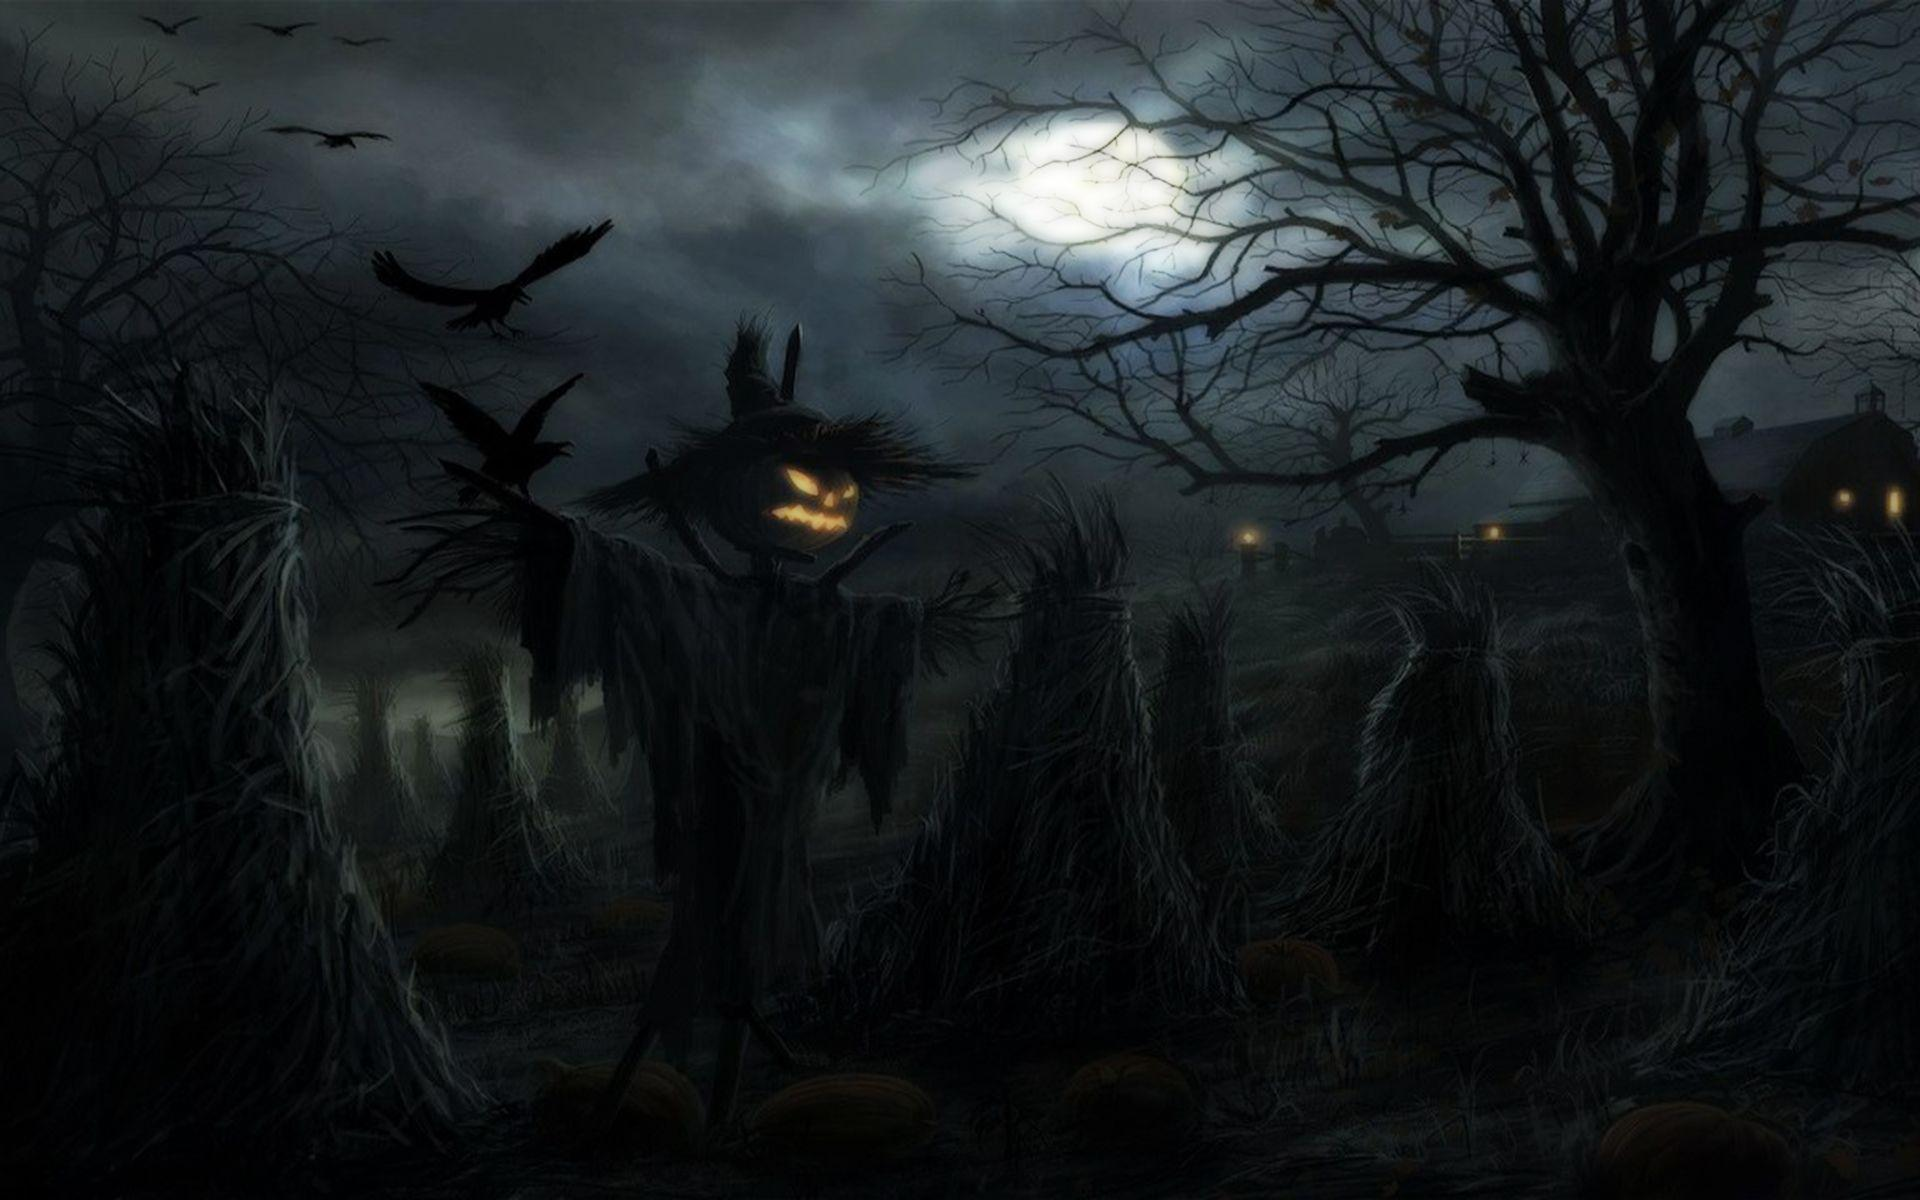 Scary Halloween Wallpapers 1080p